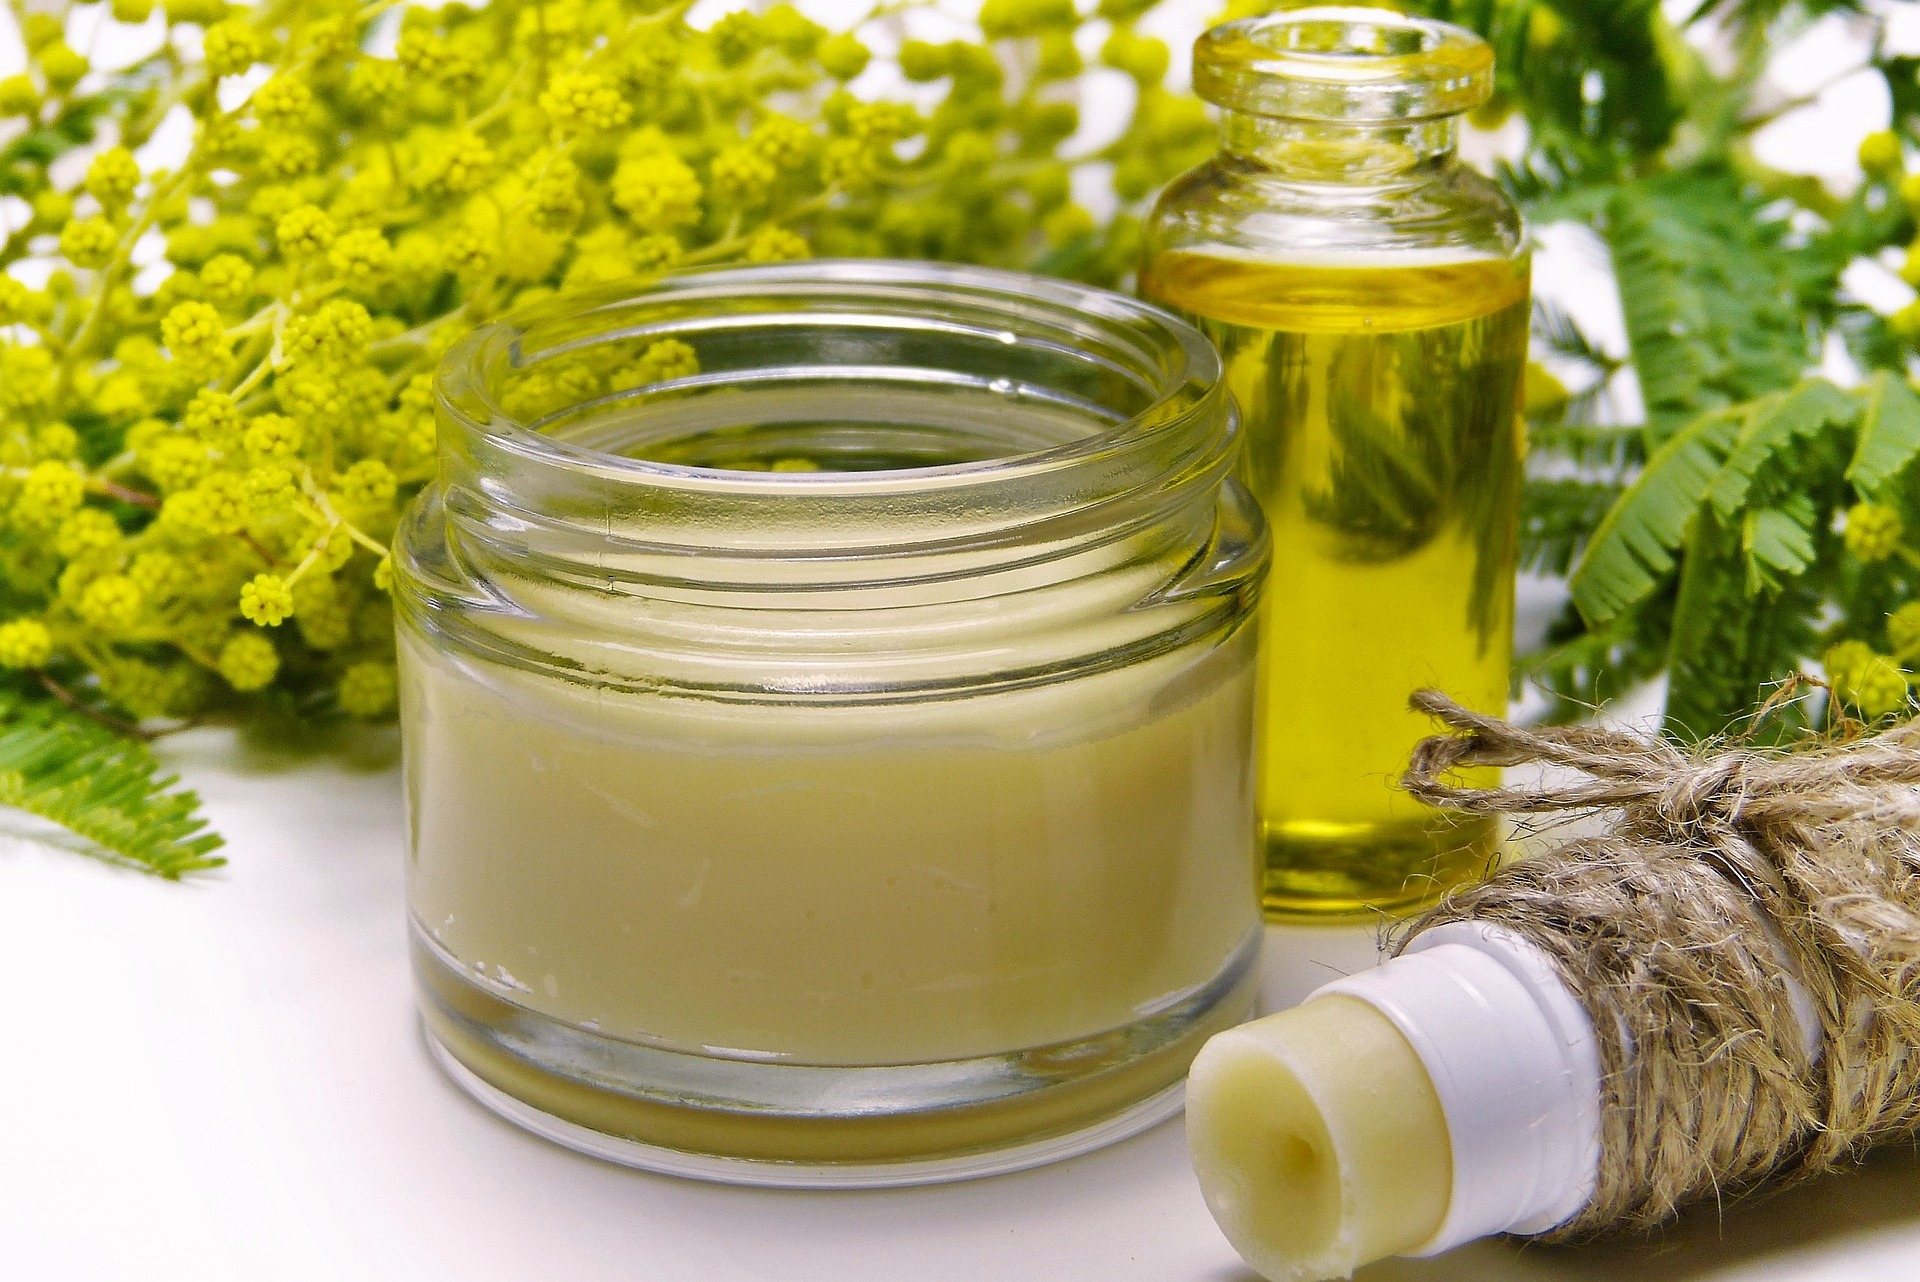 Beauty products made from acacia extracts.